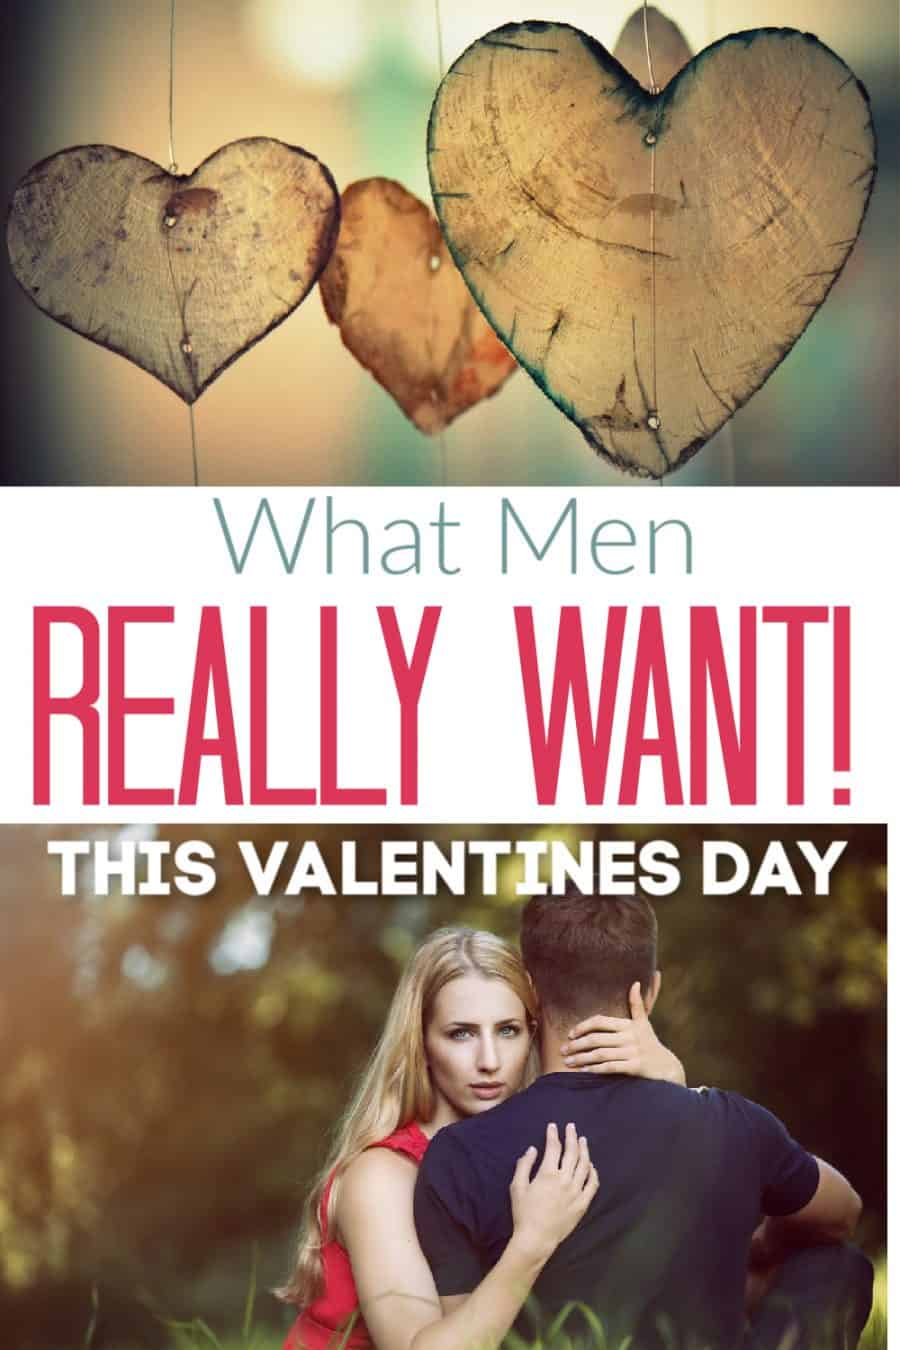 What Men Really Want This Valentines Day (+ Manly Man Co. Jerky) 11